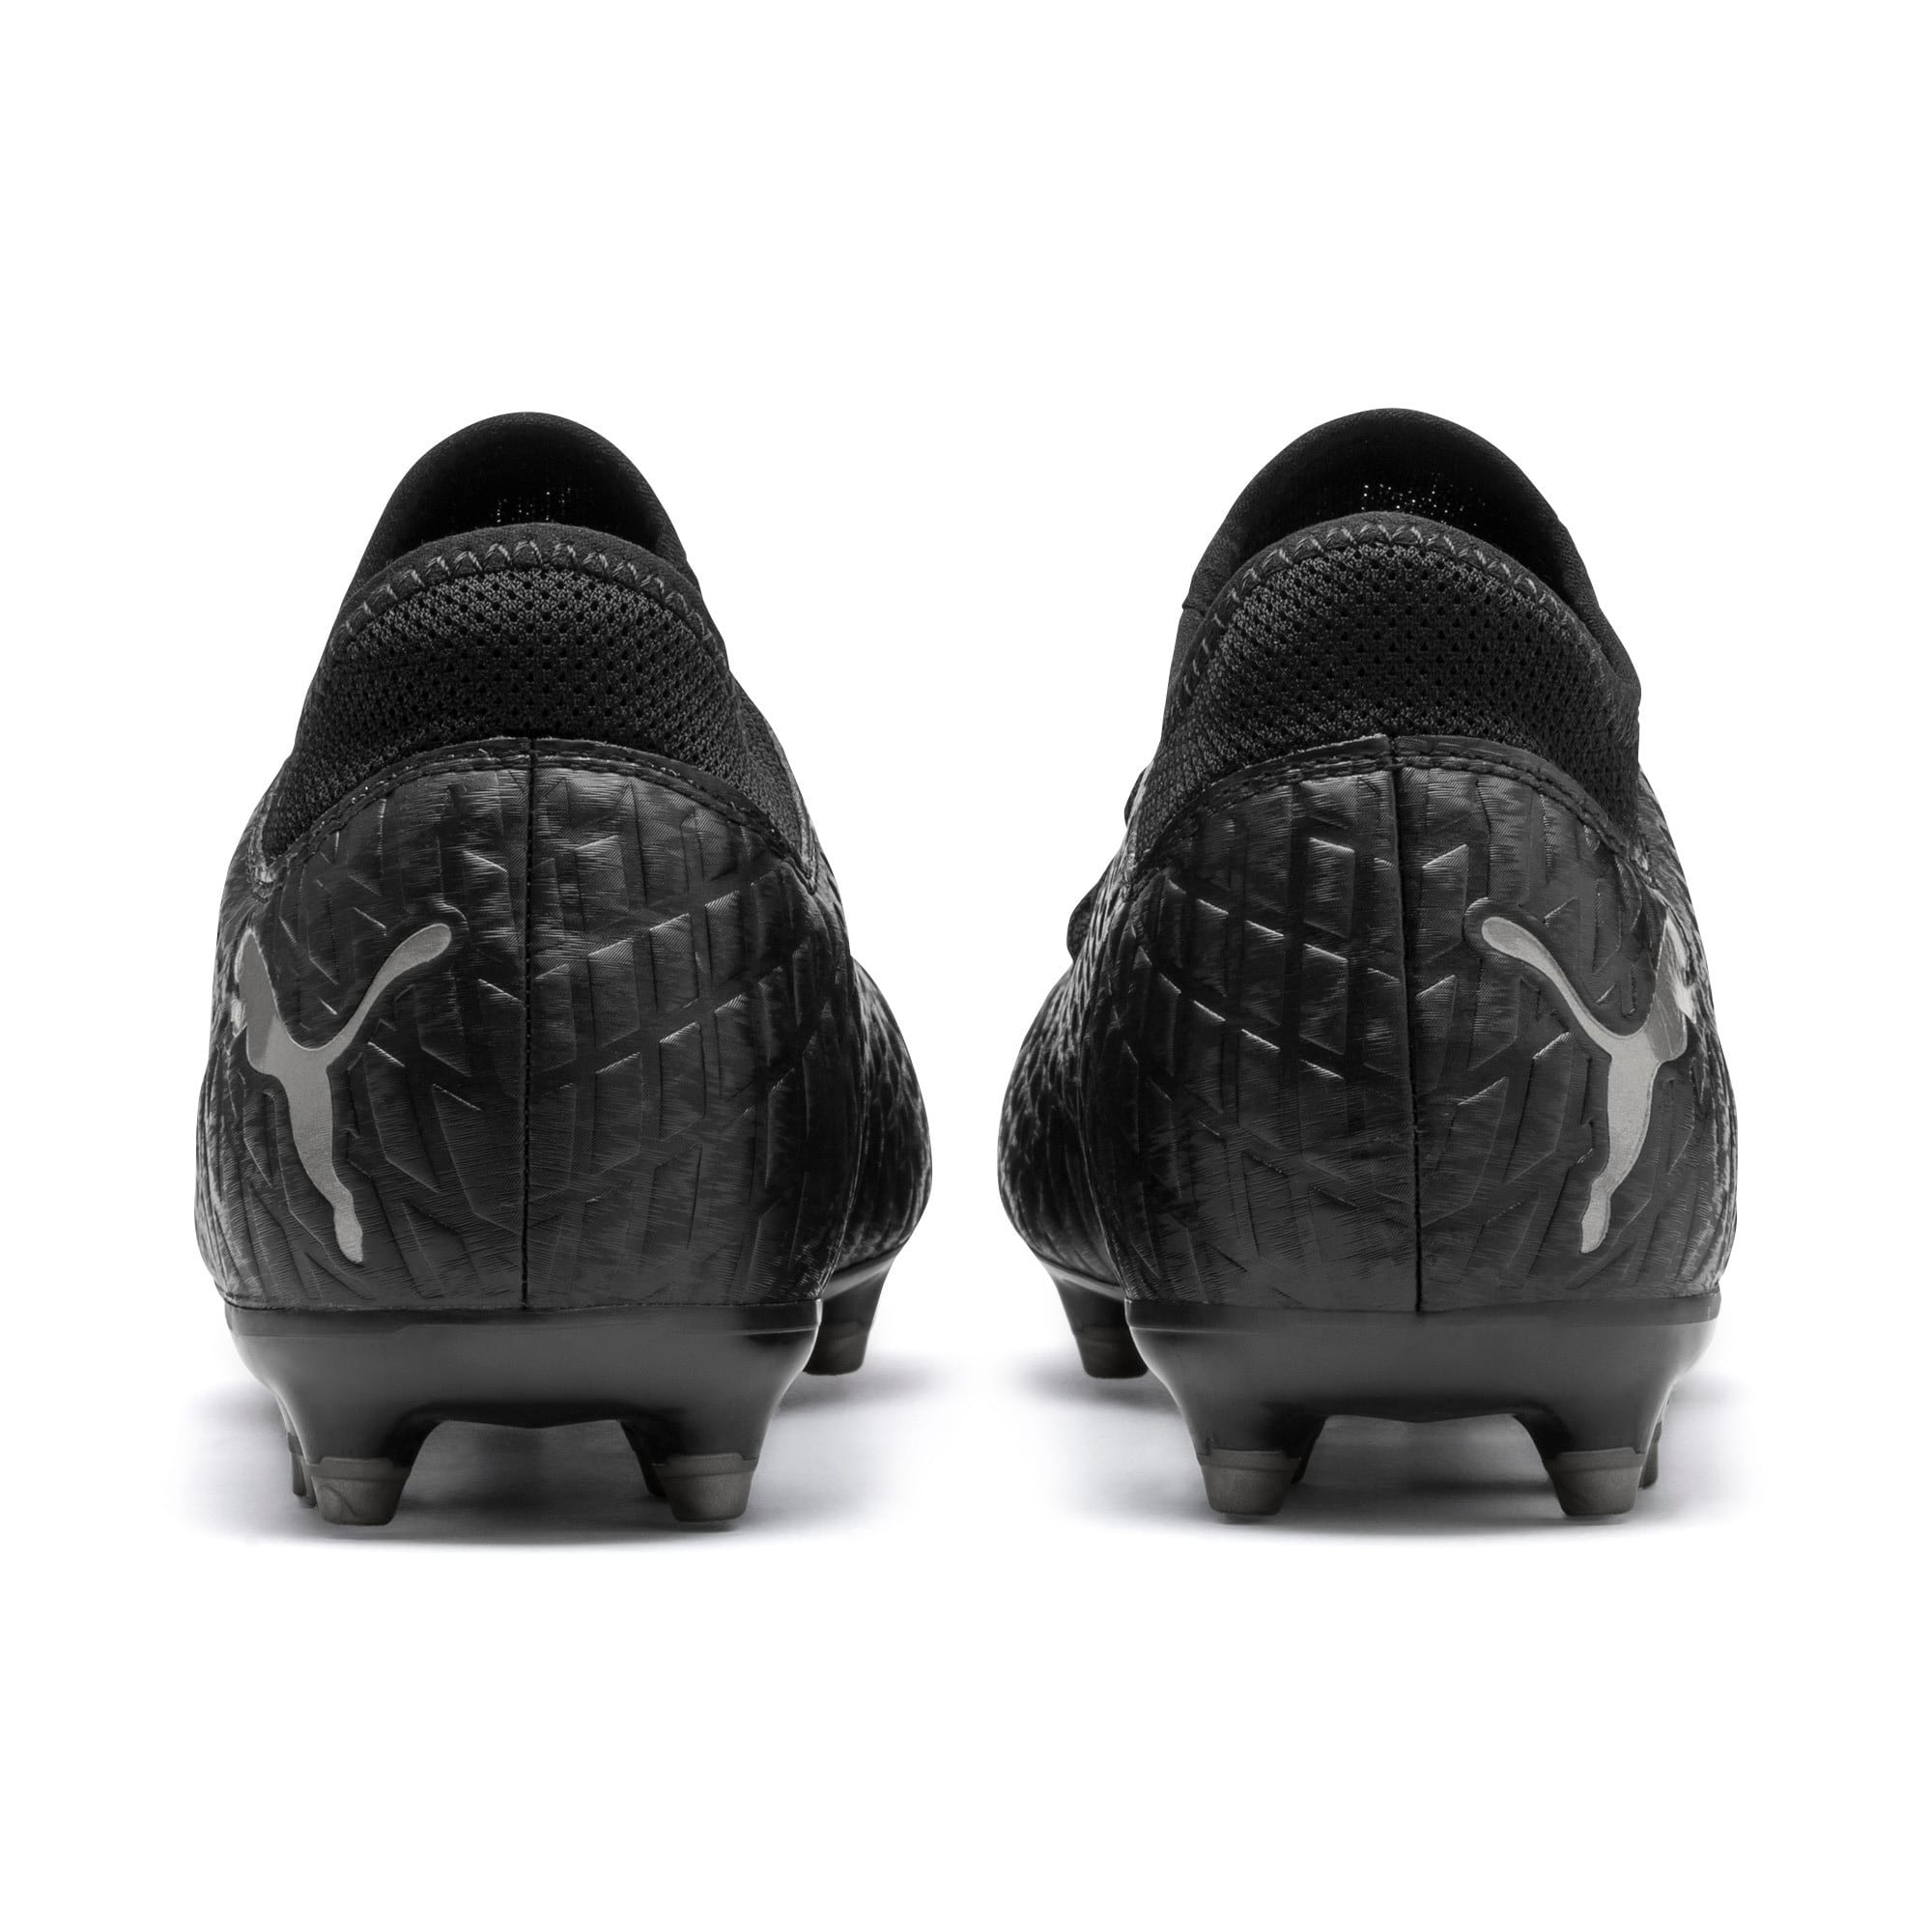 FUTURE 4.4 FG/AG Men's Football Boots, Black-Black-Puma Aged Silver, large